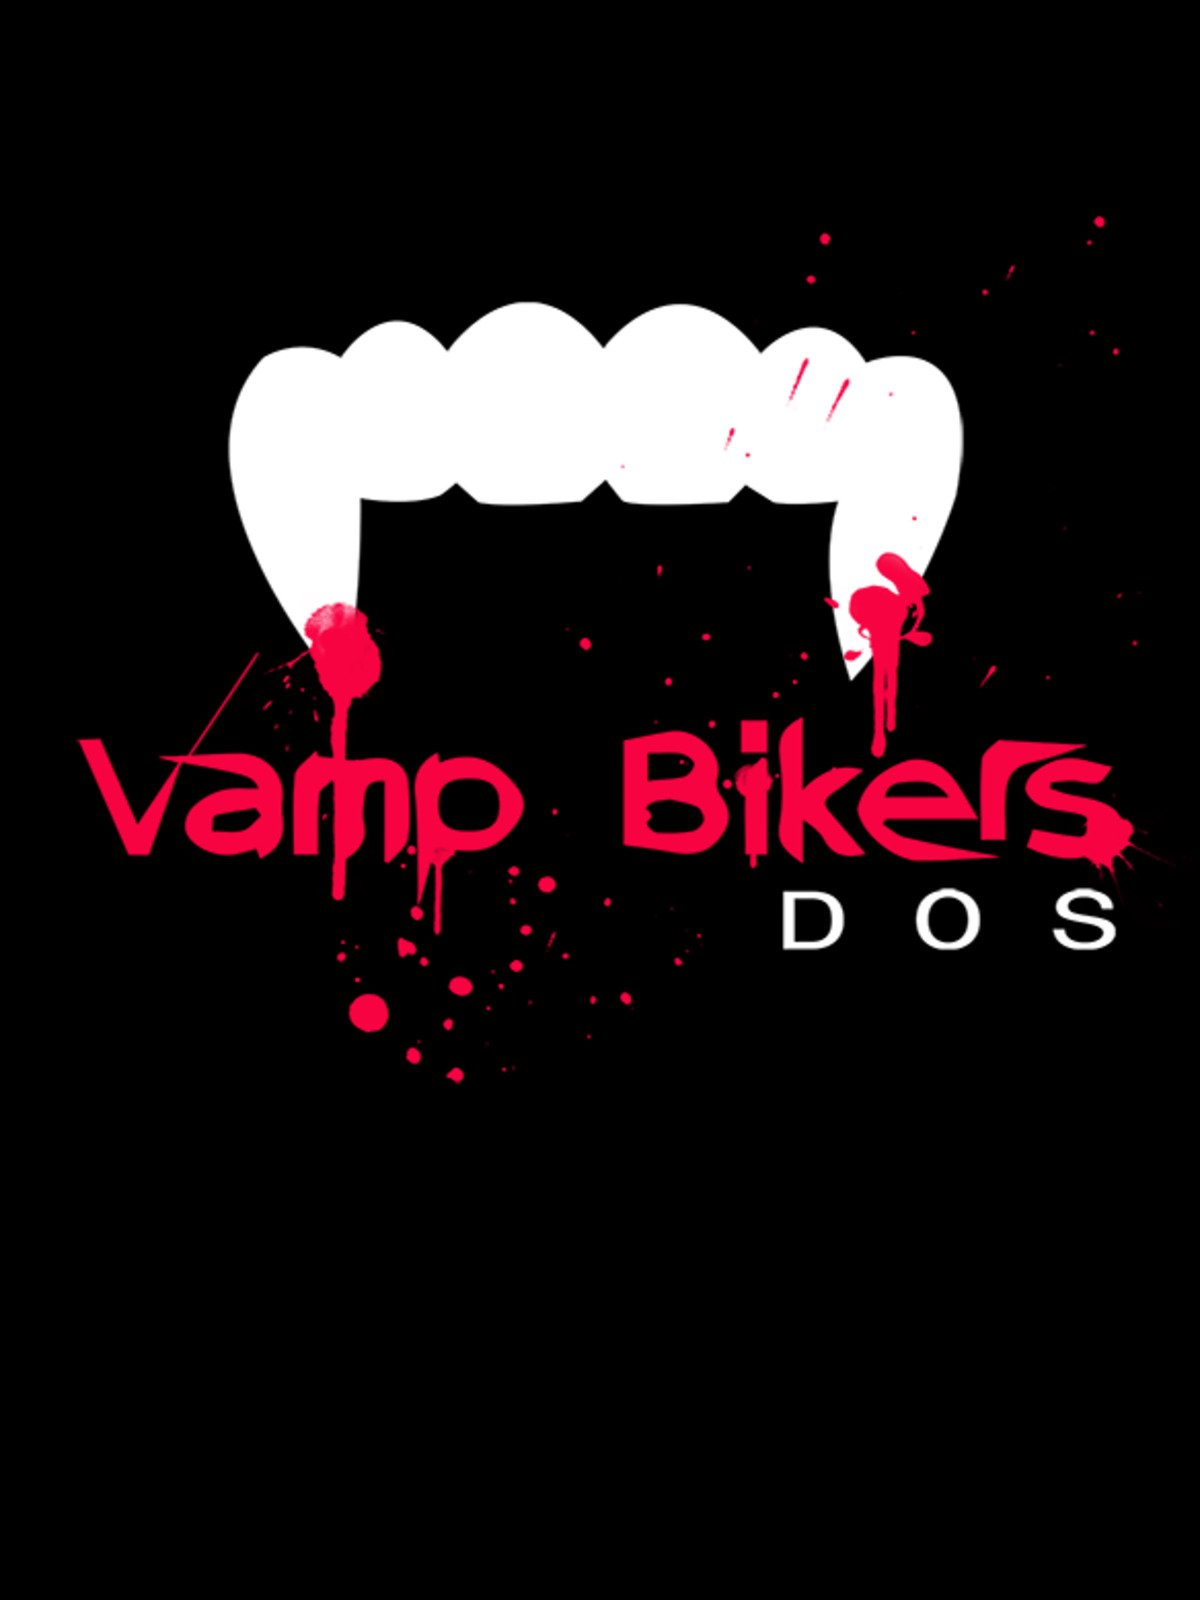 Vamp Bikers Dos